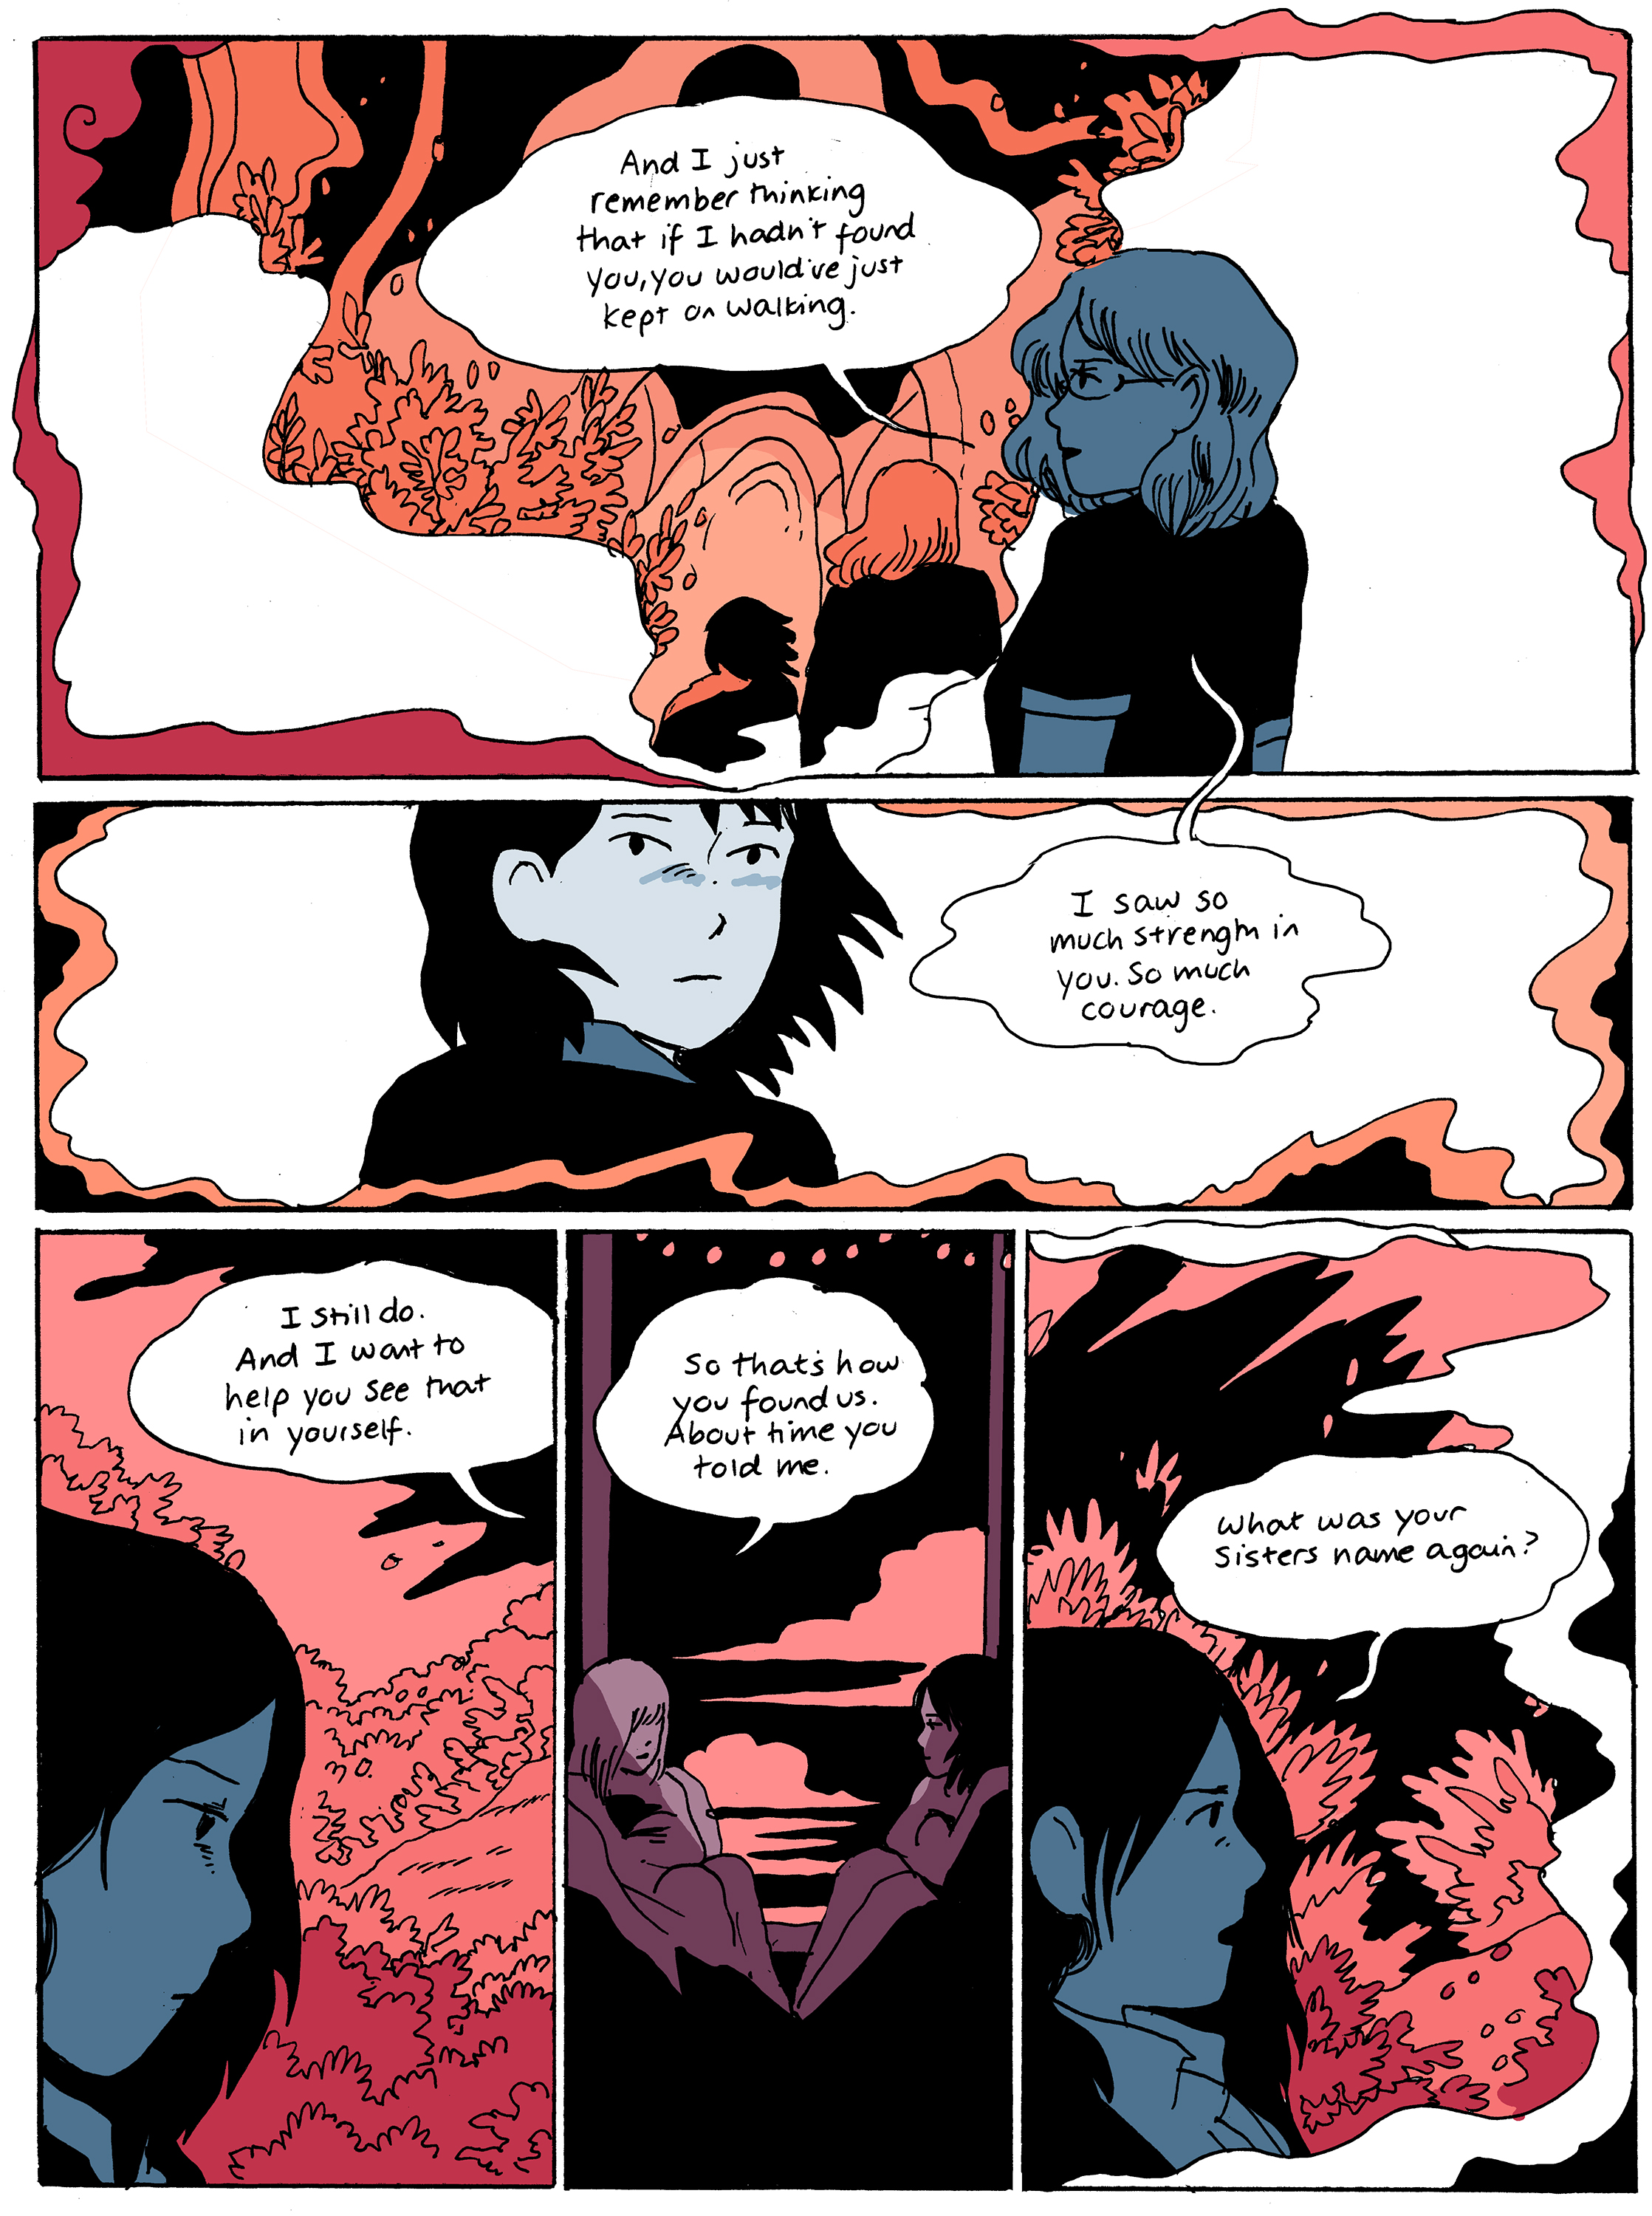 chapter13_page25.jpg